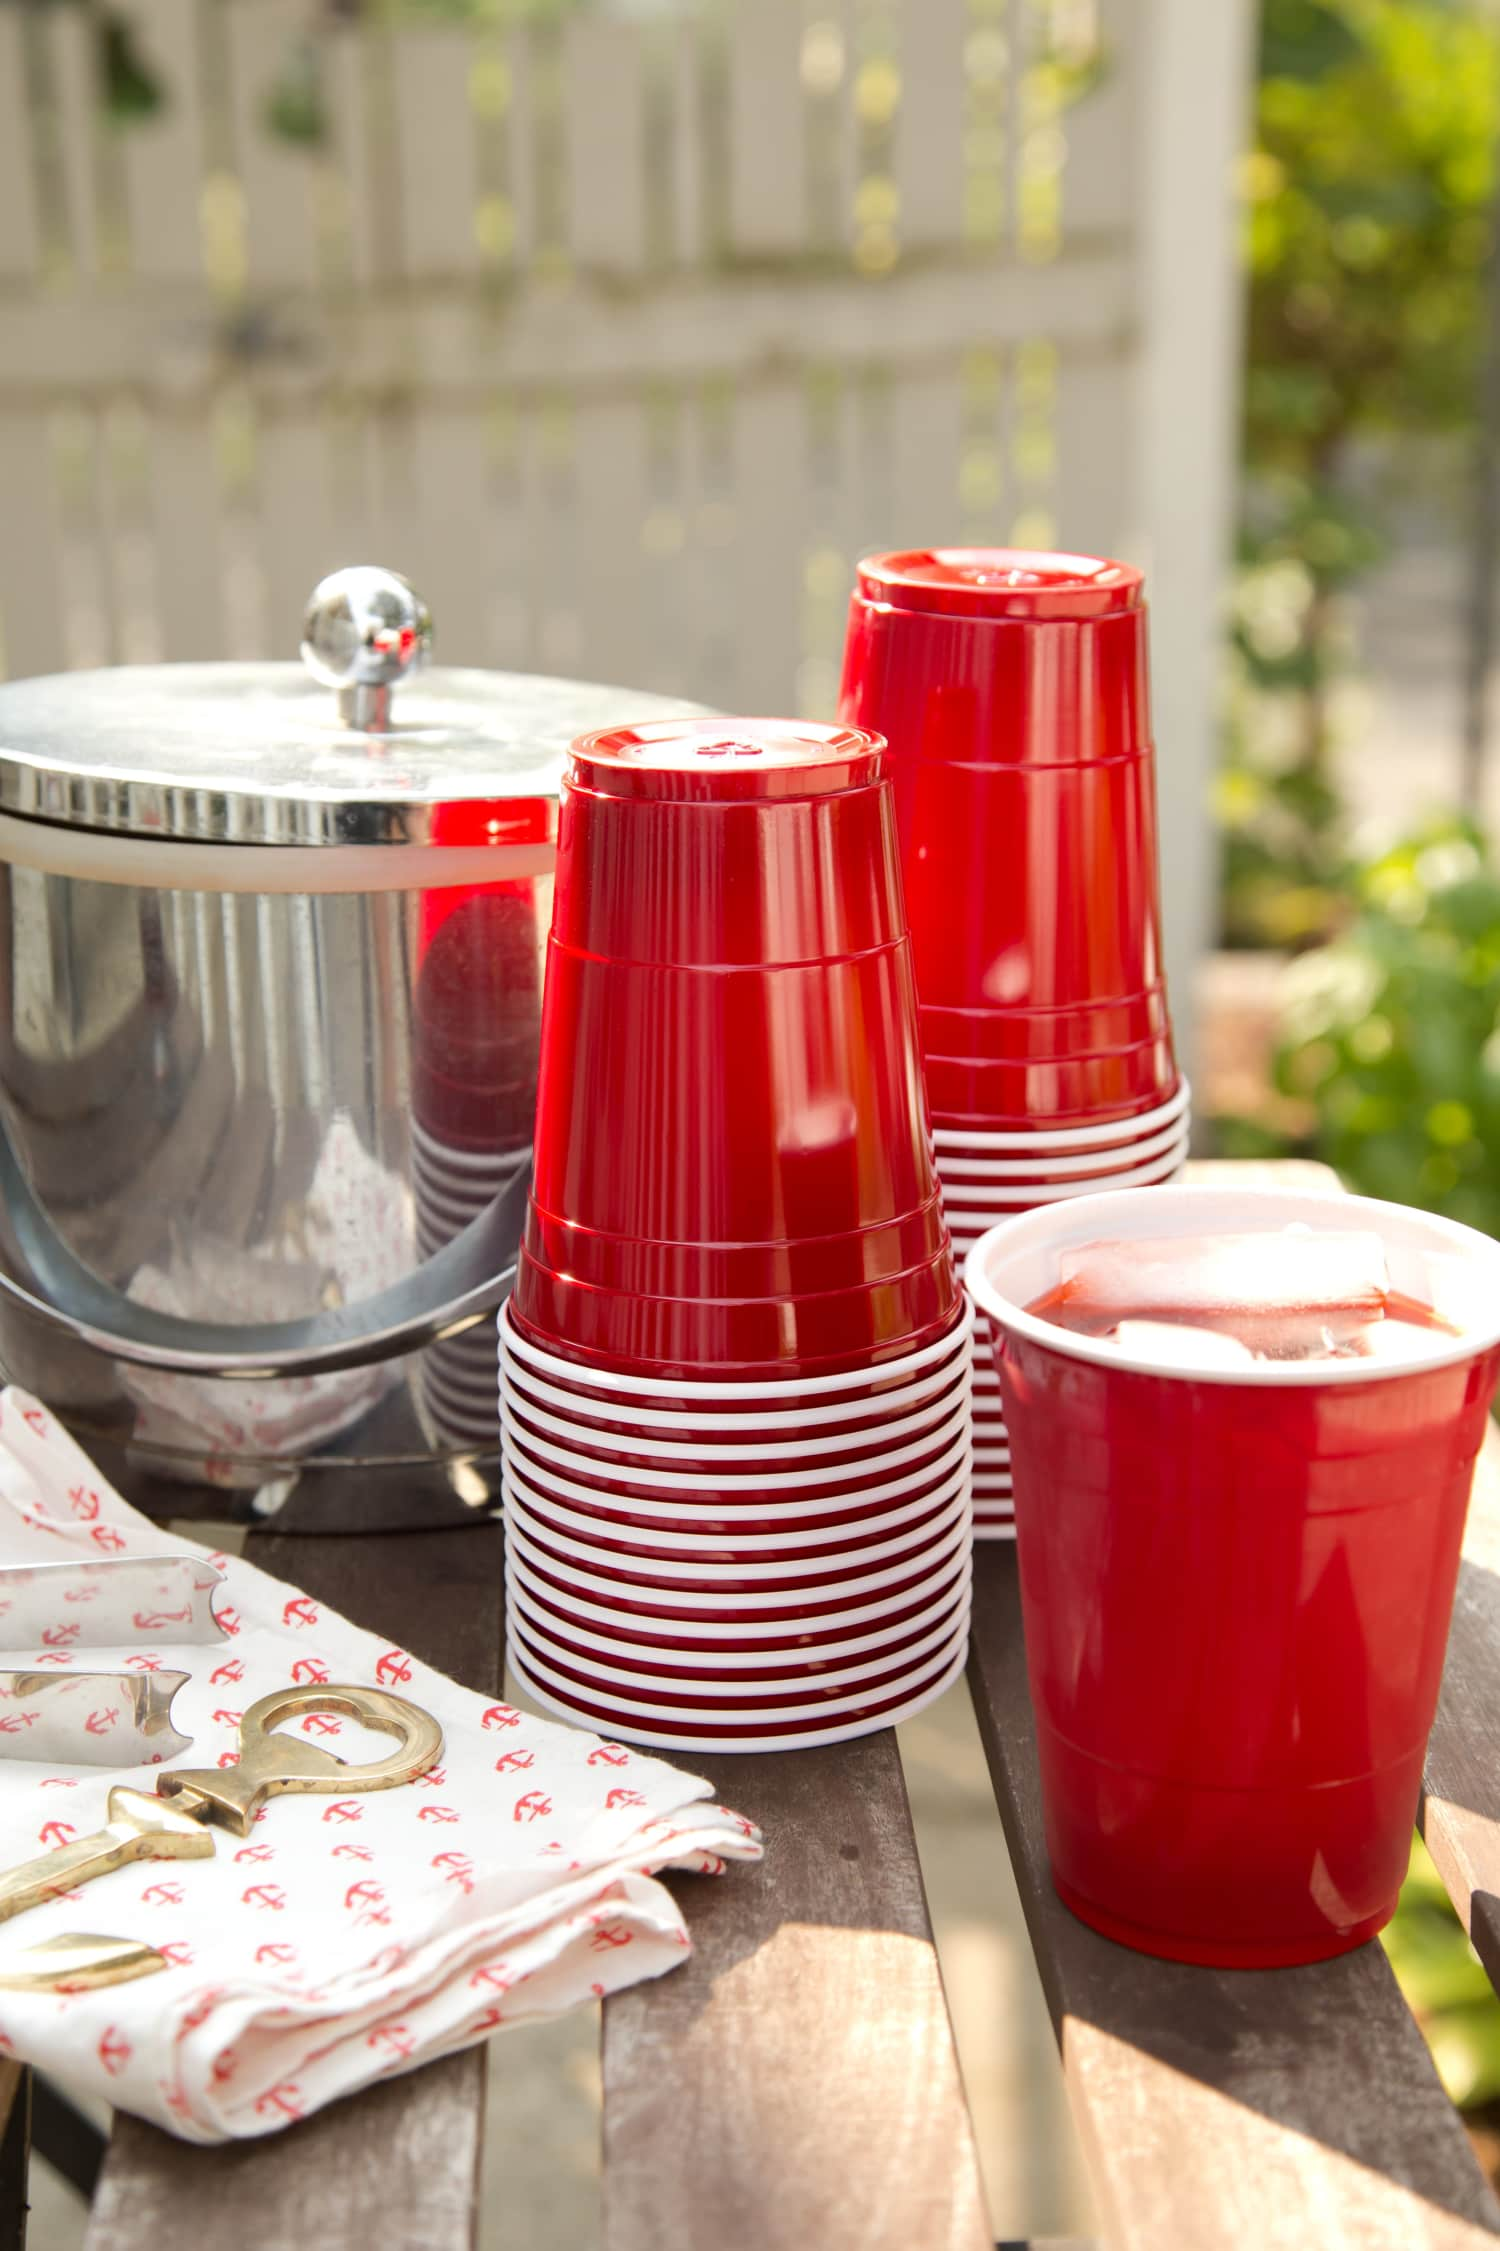 Do You Know the Secret Feature of the Iconic Red Solo Cup ...